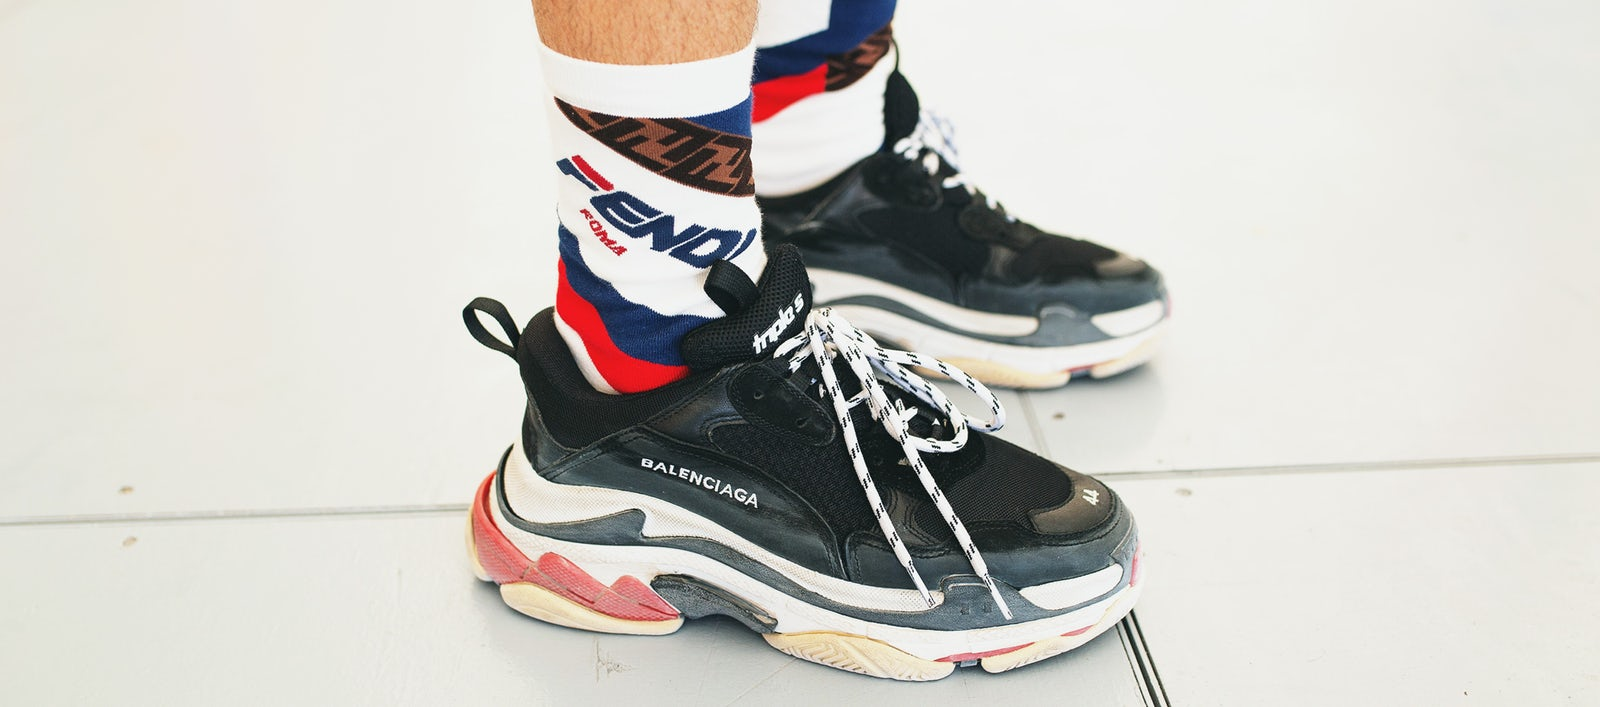 5ed10f28a826 balenciaga sneakers desktop. Matthew Sperzel Getty Images